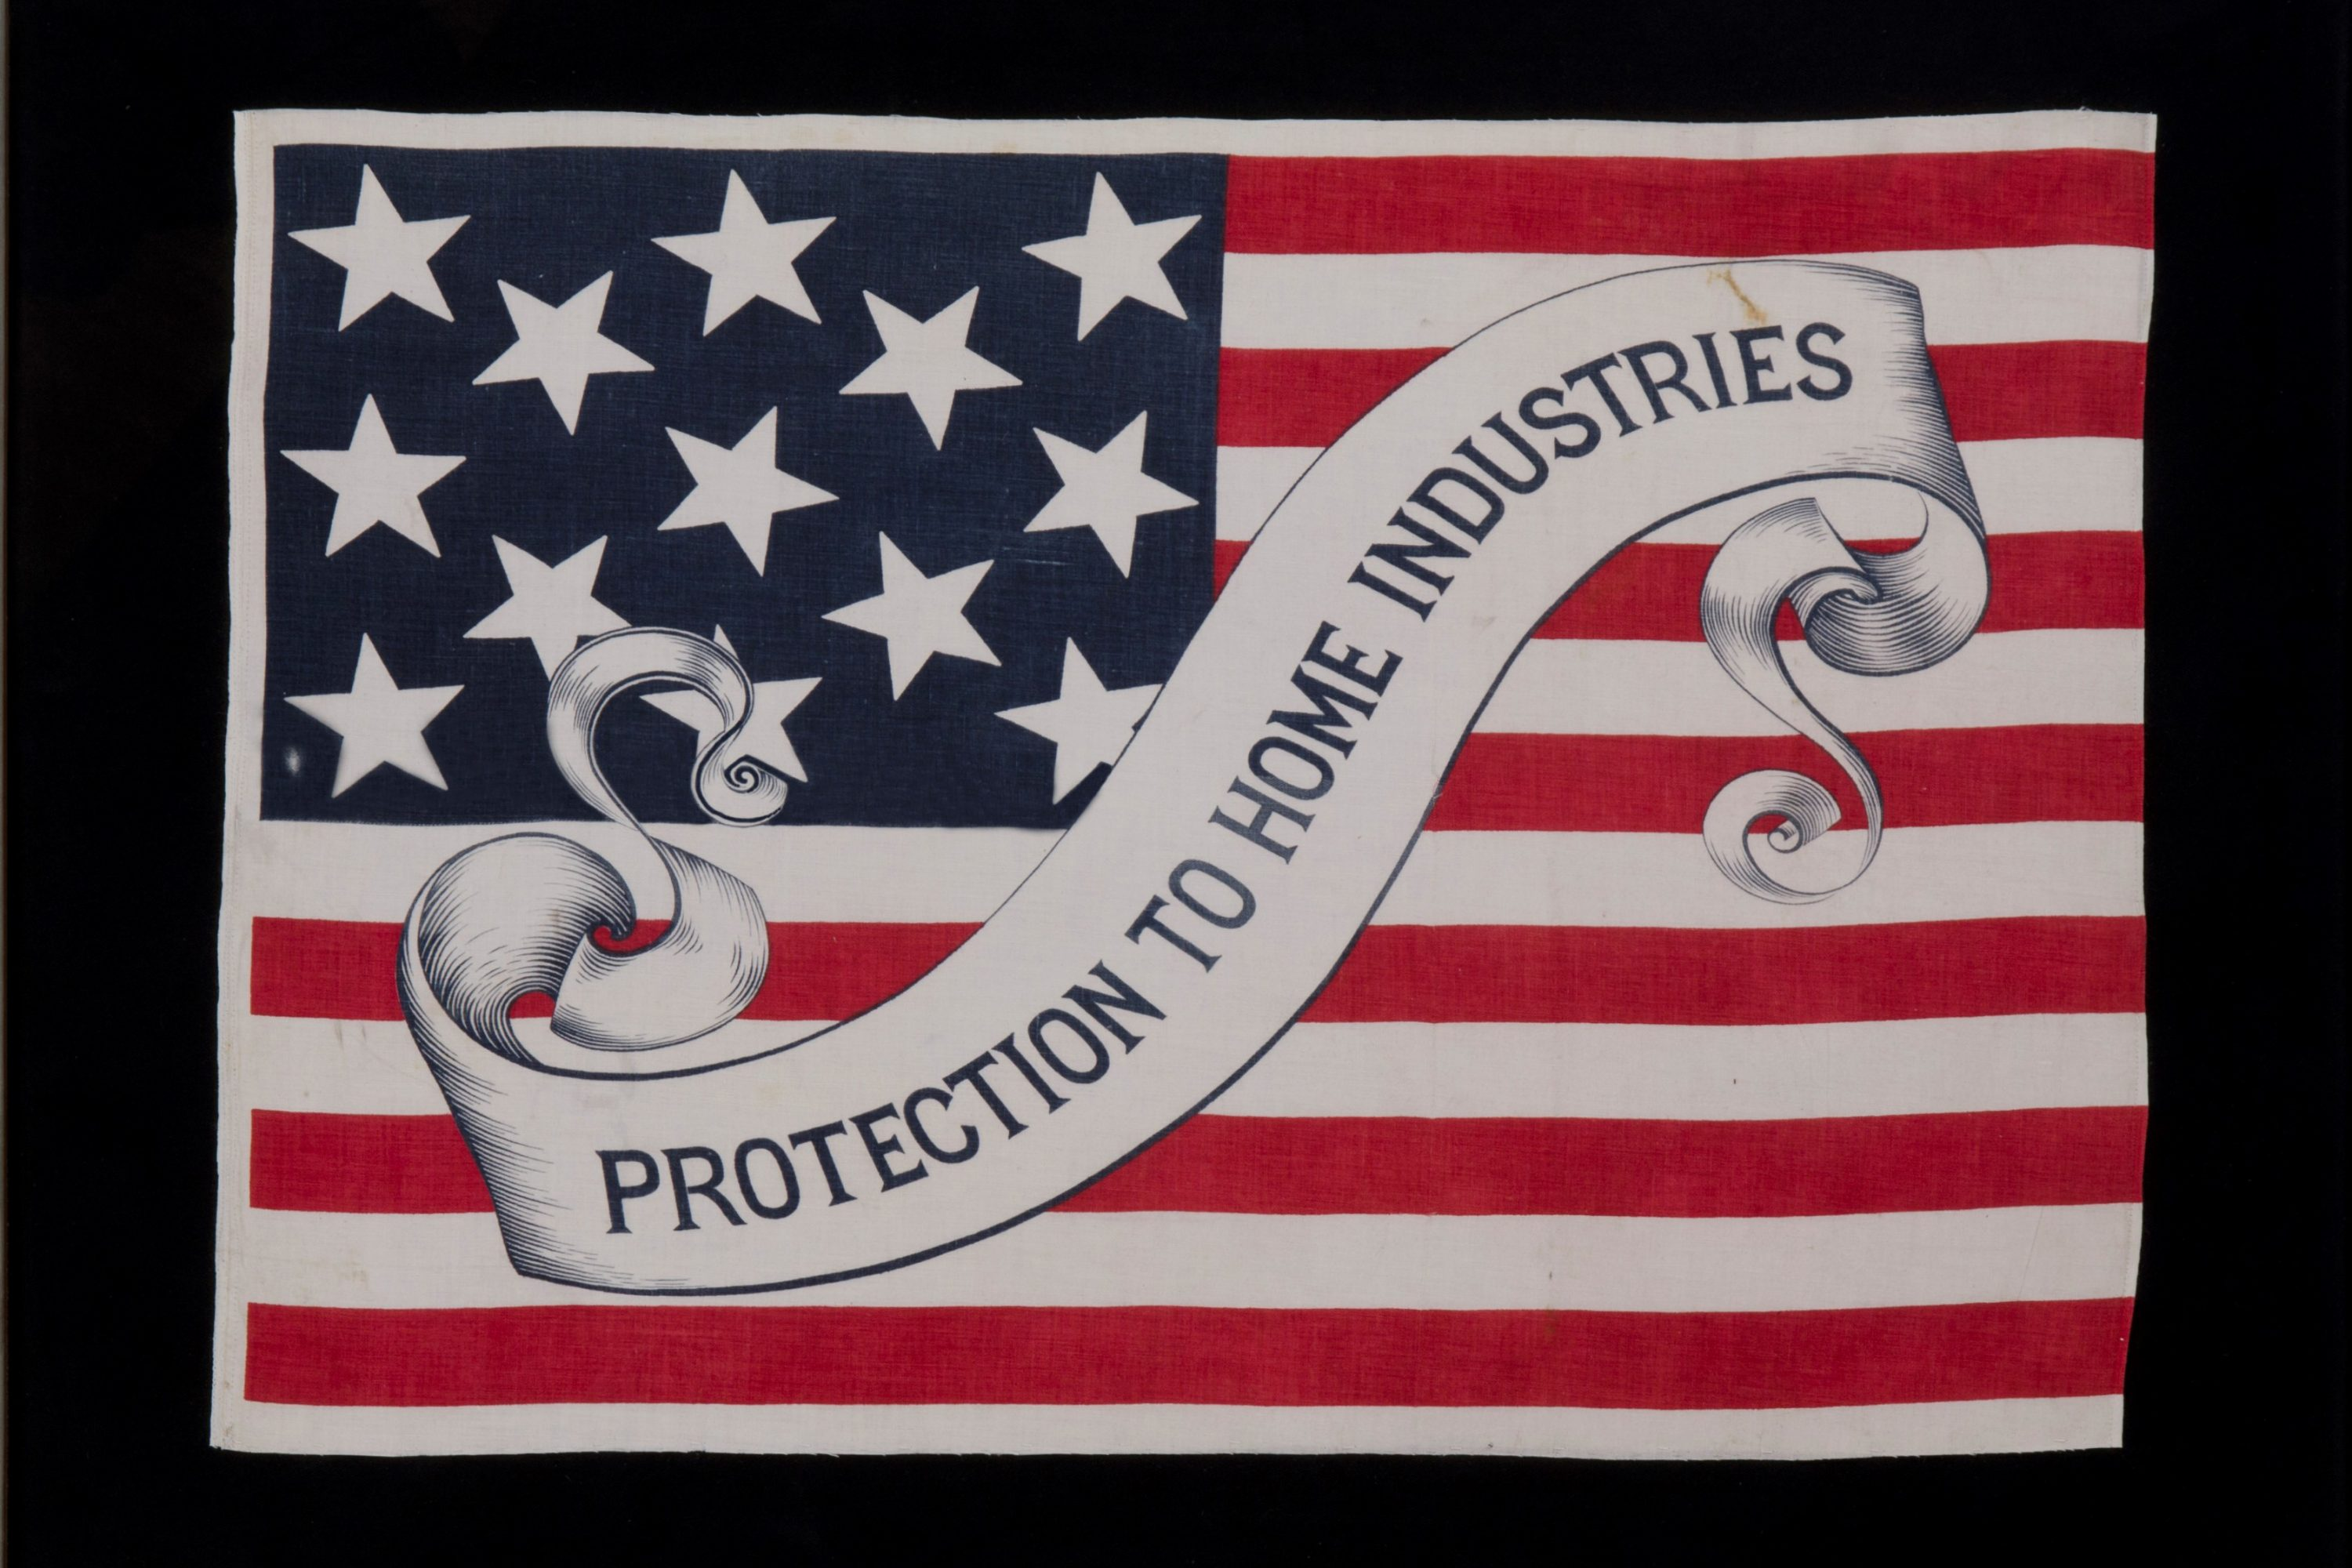 The more than 60 antique campaign flags on exhibit at the Benton convey messages crafted by moneymaking businesses rather than by the presidential candidates themselves. They also feature a variety of stars and stripes, because they date before the country adopted an official flag design.